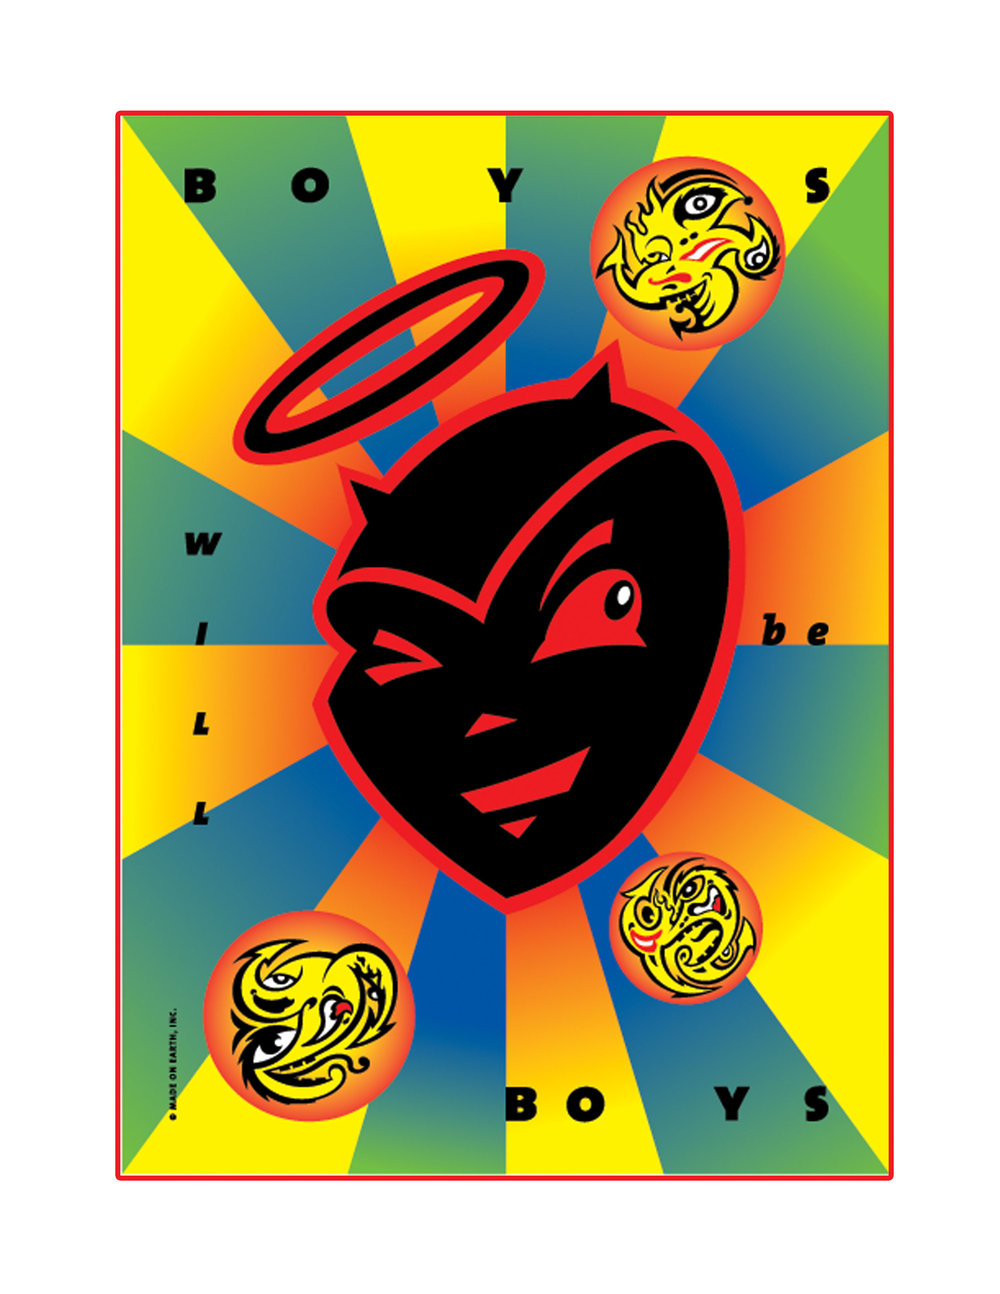 Boys-Will-Be-Boys-jpg.jpg